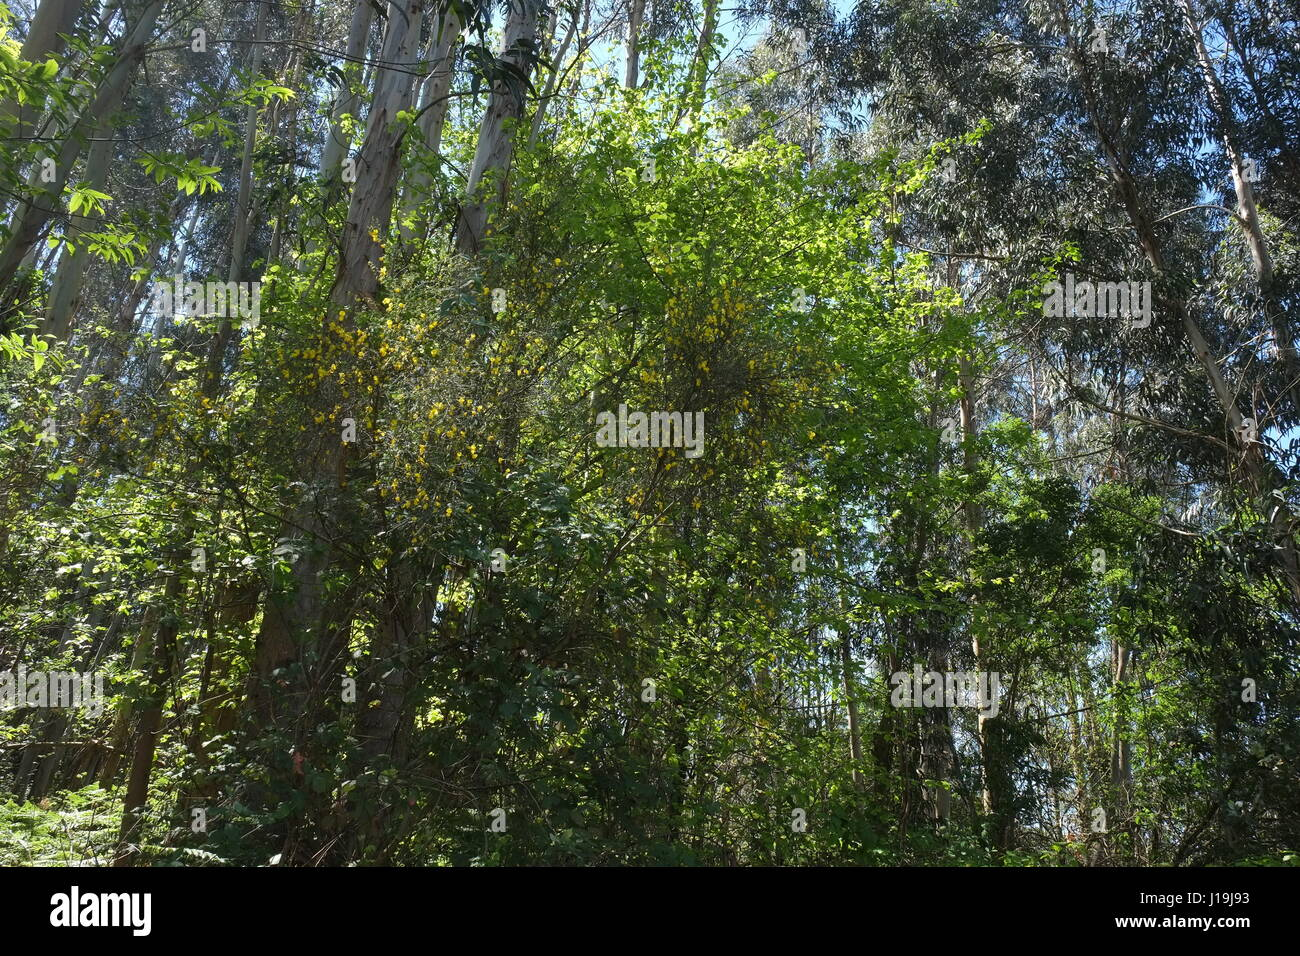 Lousa Forest in Coimbra, Portugal - Stock Image